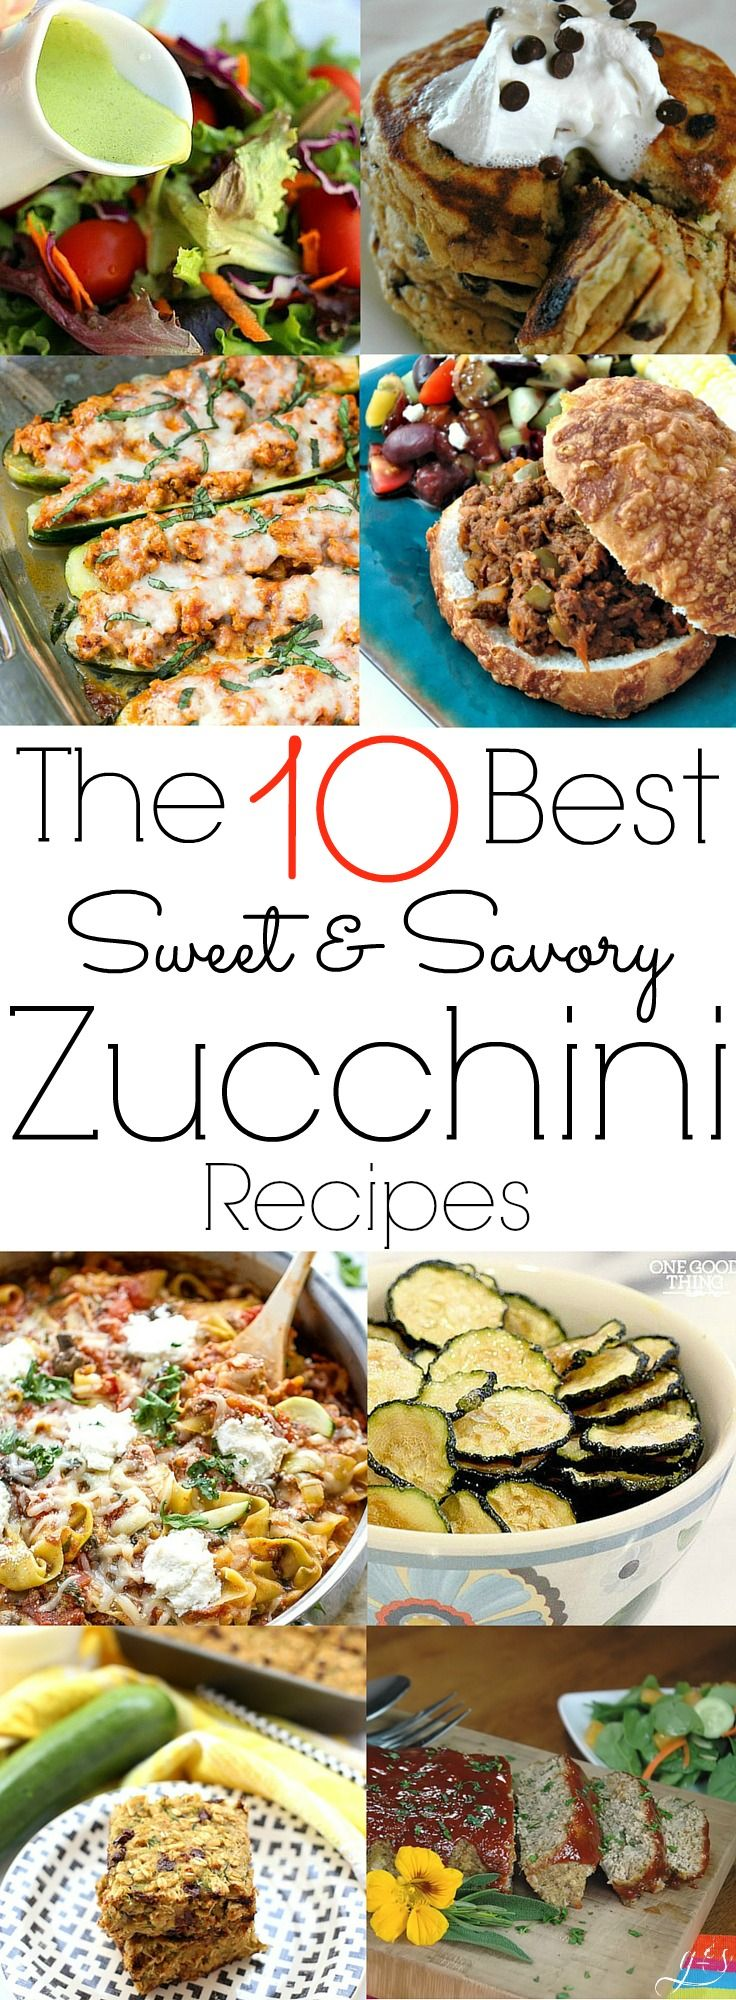 Here are the 10 BEST Sweet & Savory Zucchini Recipes that are healthy, homemade, and easy to prepare! Your family will love these gluten-free and clean eating meals for breakfast, lunch, and dinner. You will find the likes of cookies, pancakes, and bars for the sweet options and stuffed zucchini chicken boats, sloppy joes, and a vegan chip, plus more for the savory! Most are low carb but all are packed with veggies and other whole foods!